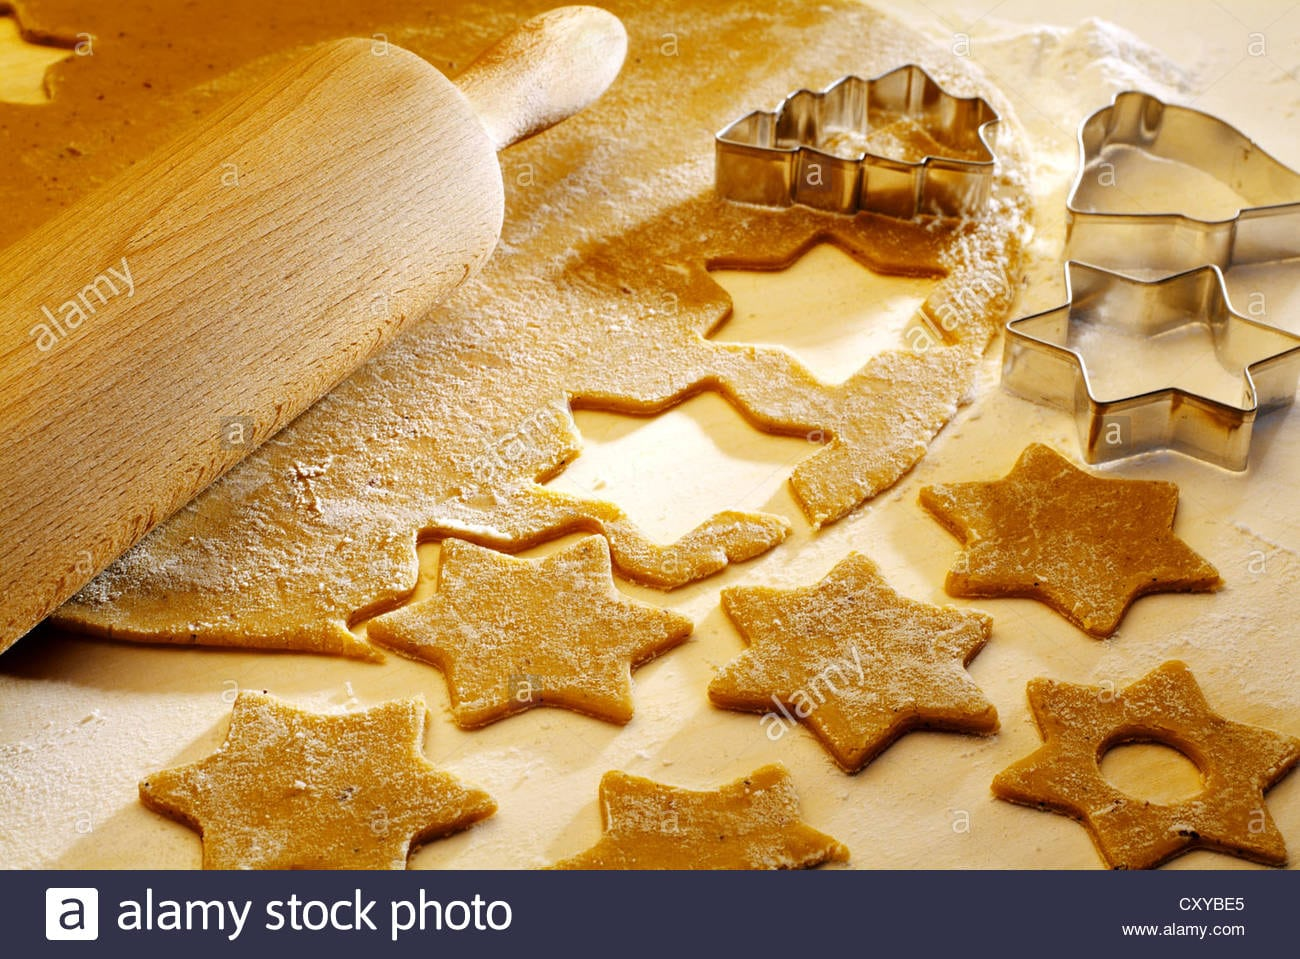 Christmas Cookies, Cookie Dough, Biscuits Cut Out, Rolling Pin